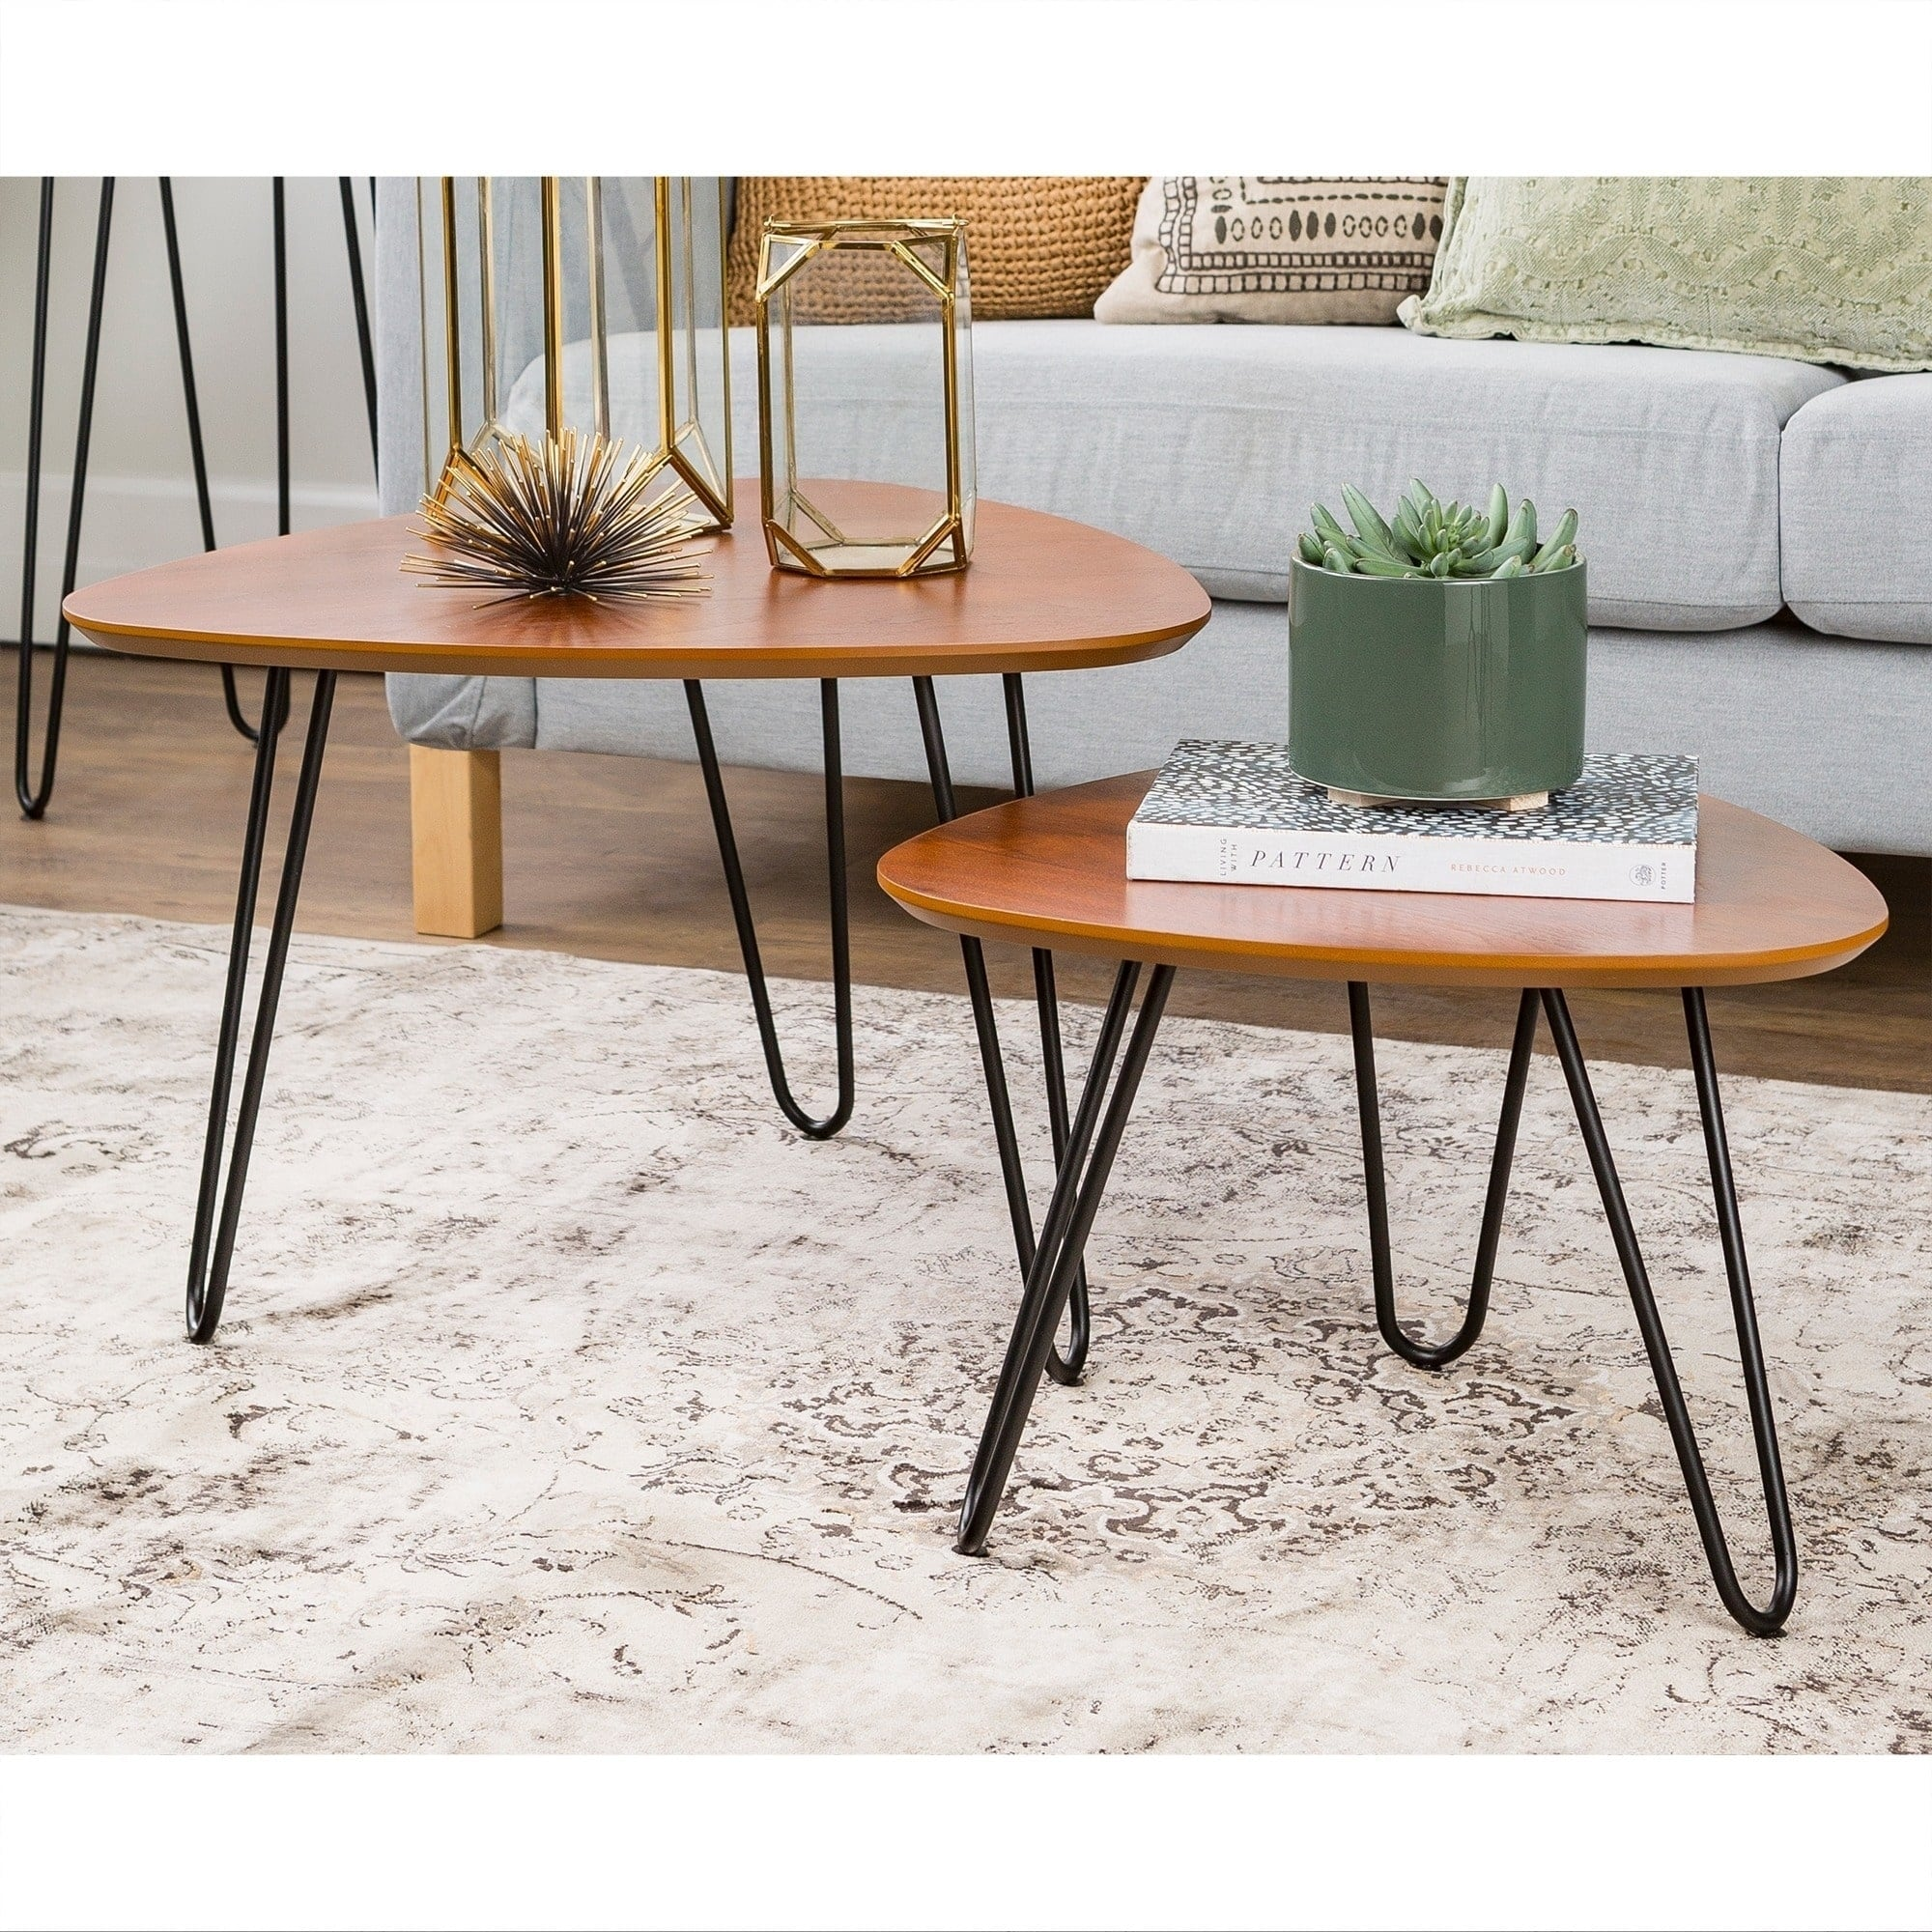 hairpin leg wood nesting coffee table set walnut free room essentials accent small counter lamps modern silver lamp thin cabinet jcpenney drapes metal kitchen house interior ideas